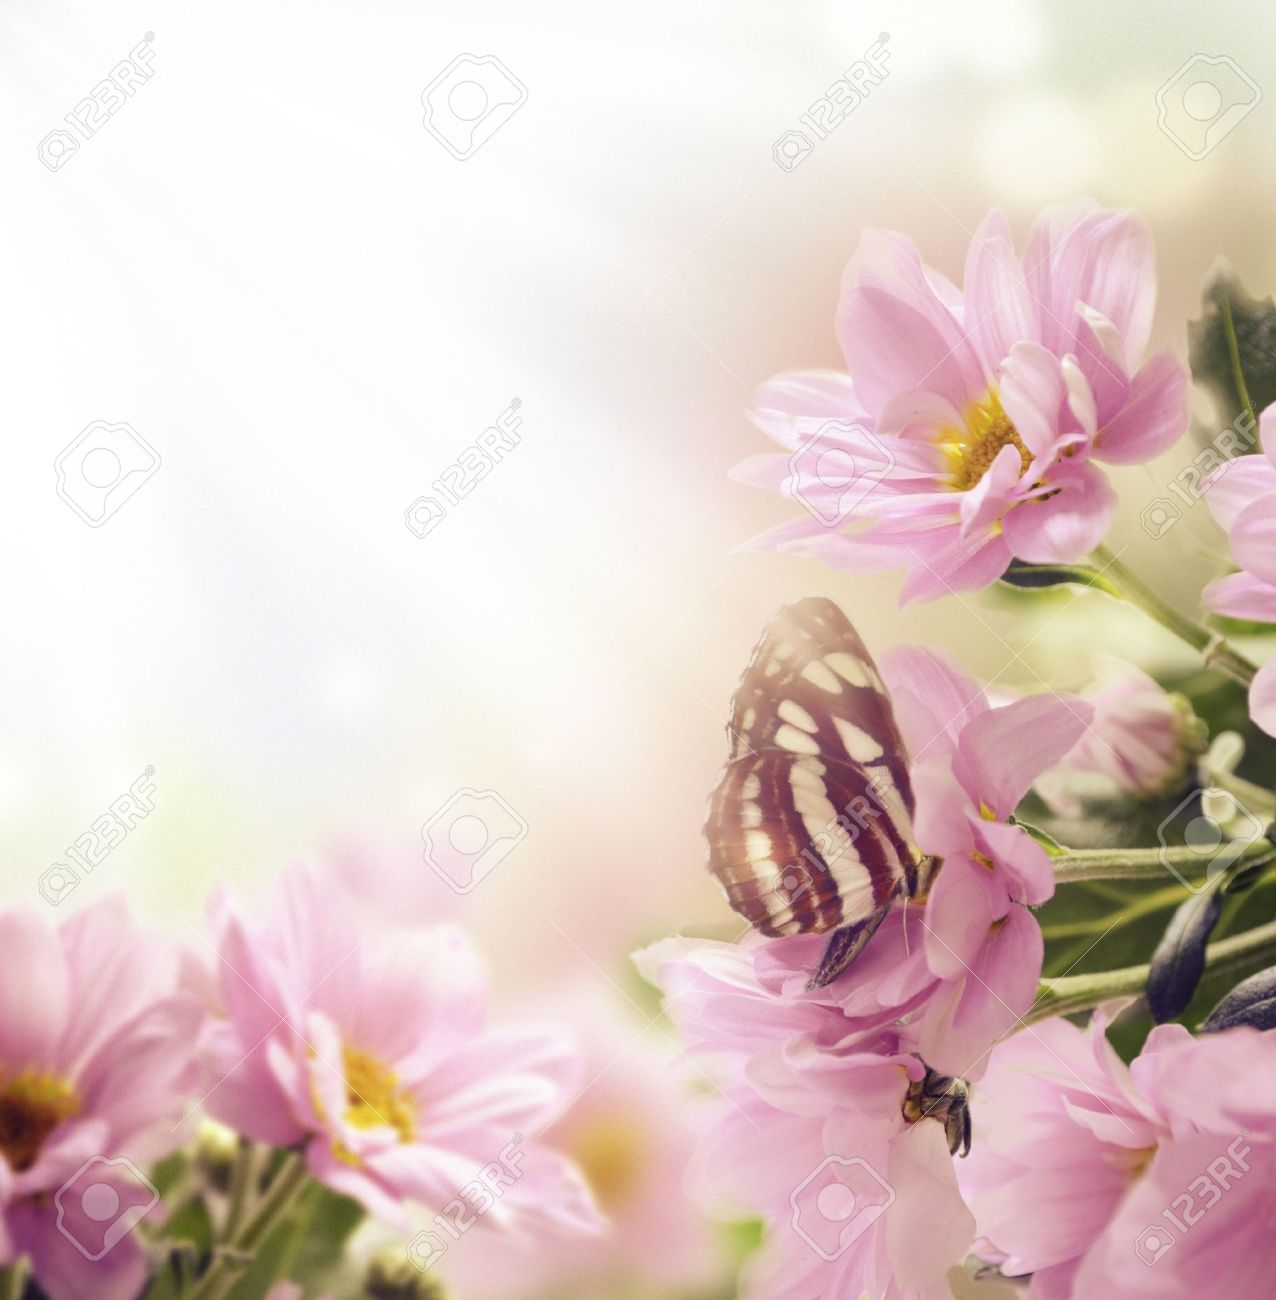 Beautiful pink flowers and butterfly in the garden - 17981756